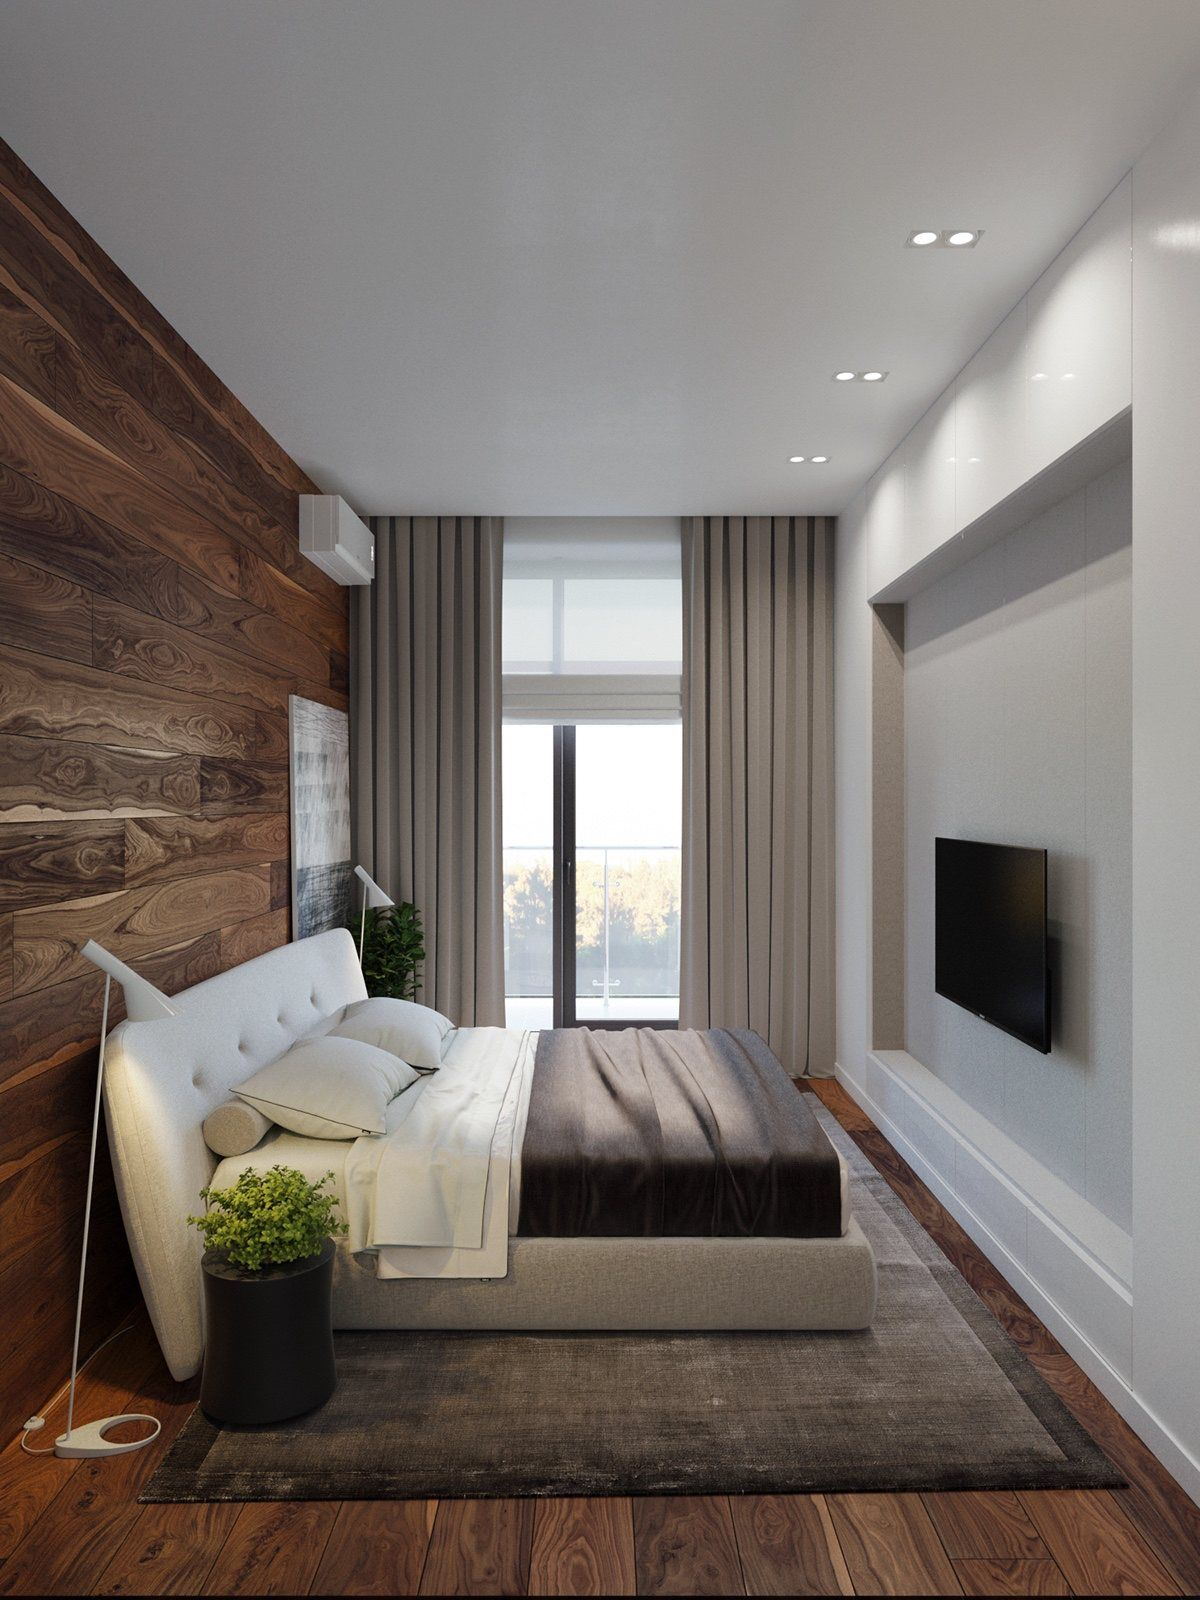 Rustic Beauty In An Inner City Apartment Modern Apartment Design Apartment Bedroom Design Apartment Bedroom Decor